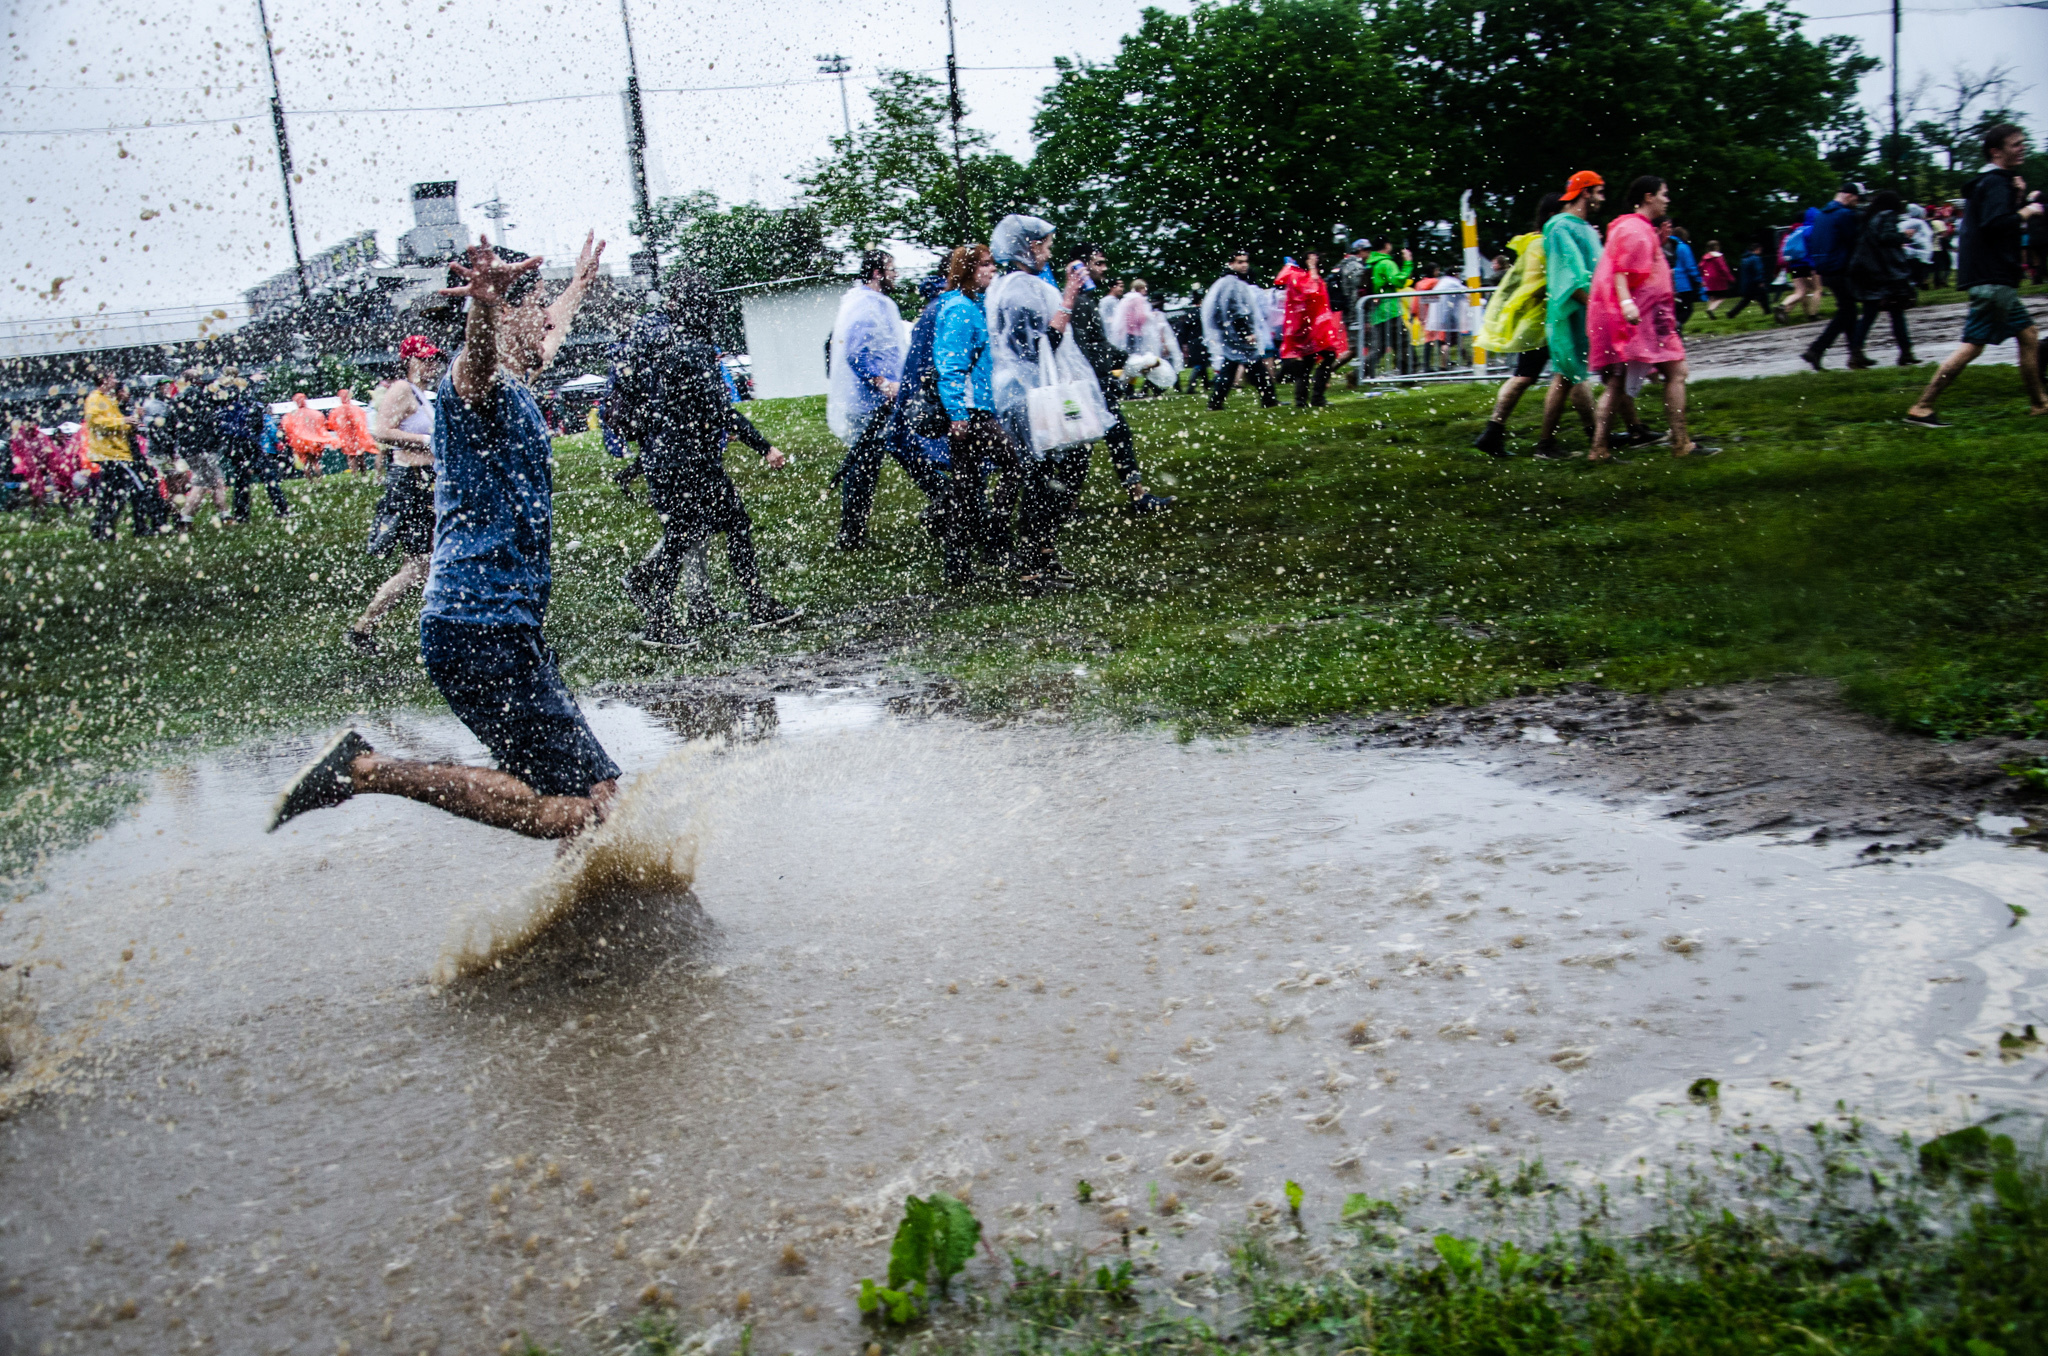 Here's what happens when it thunderstorms at Governors Ball